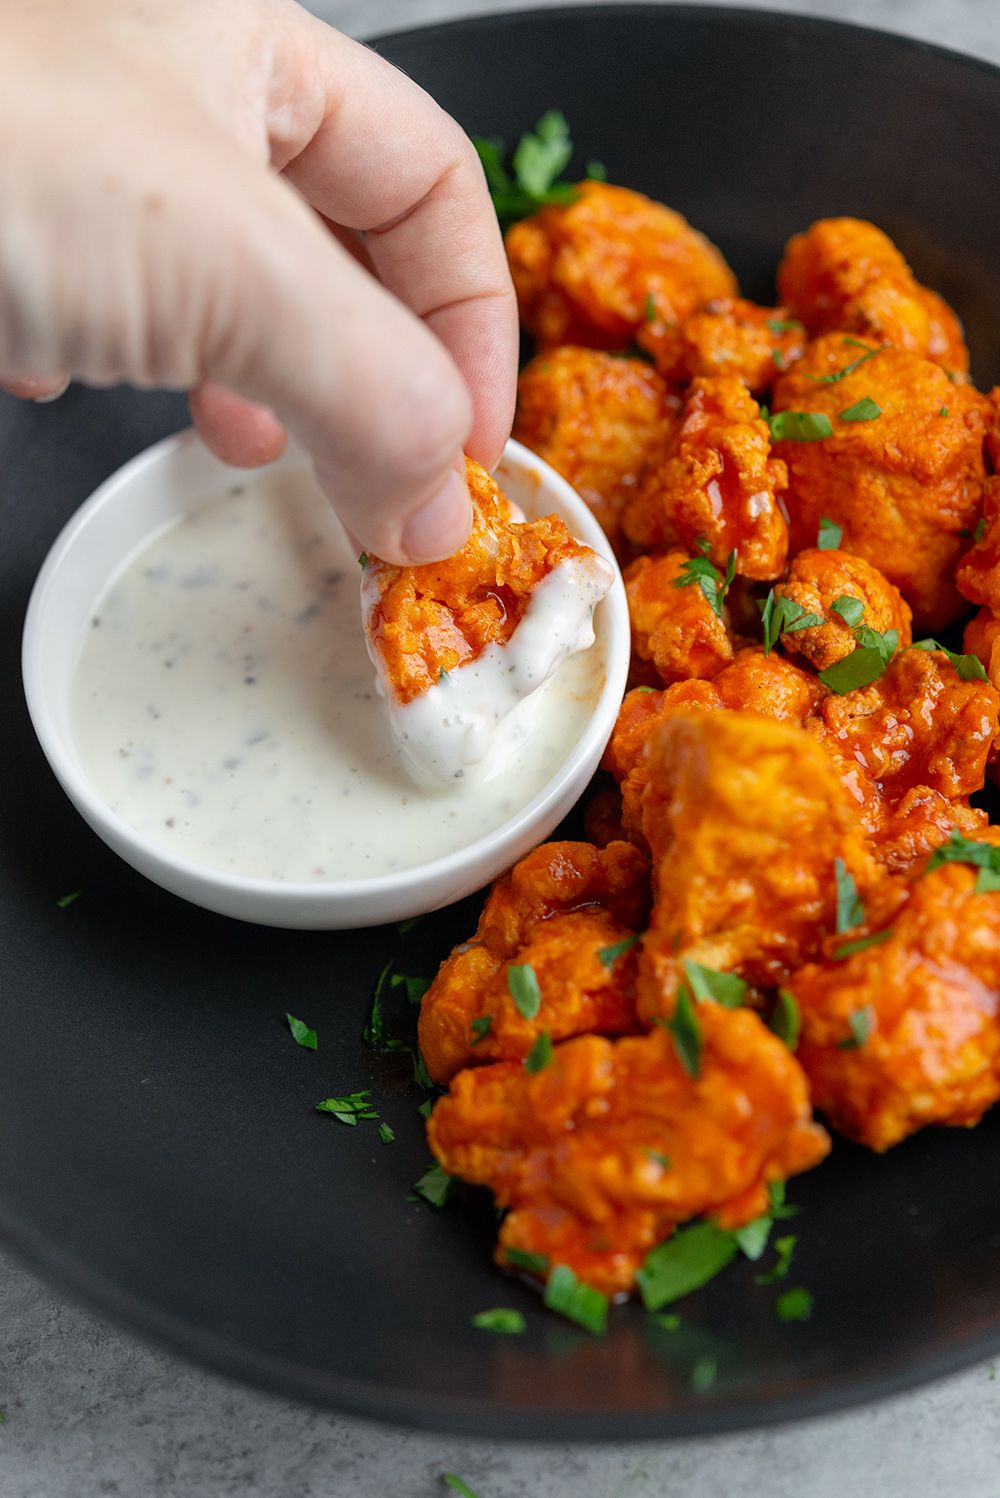 Air Fryer Cauliflower Wings Looking For Healthy Vegan Buffalo Wings These Air Fryer Buffalo Wing In 2020 Vegan Appetizers Cauliflower Wings Vegan Appetizers Recipes